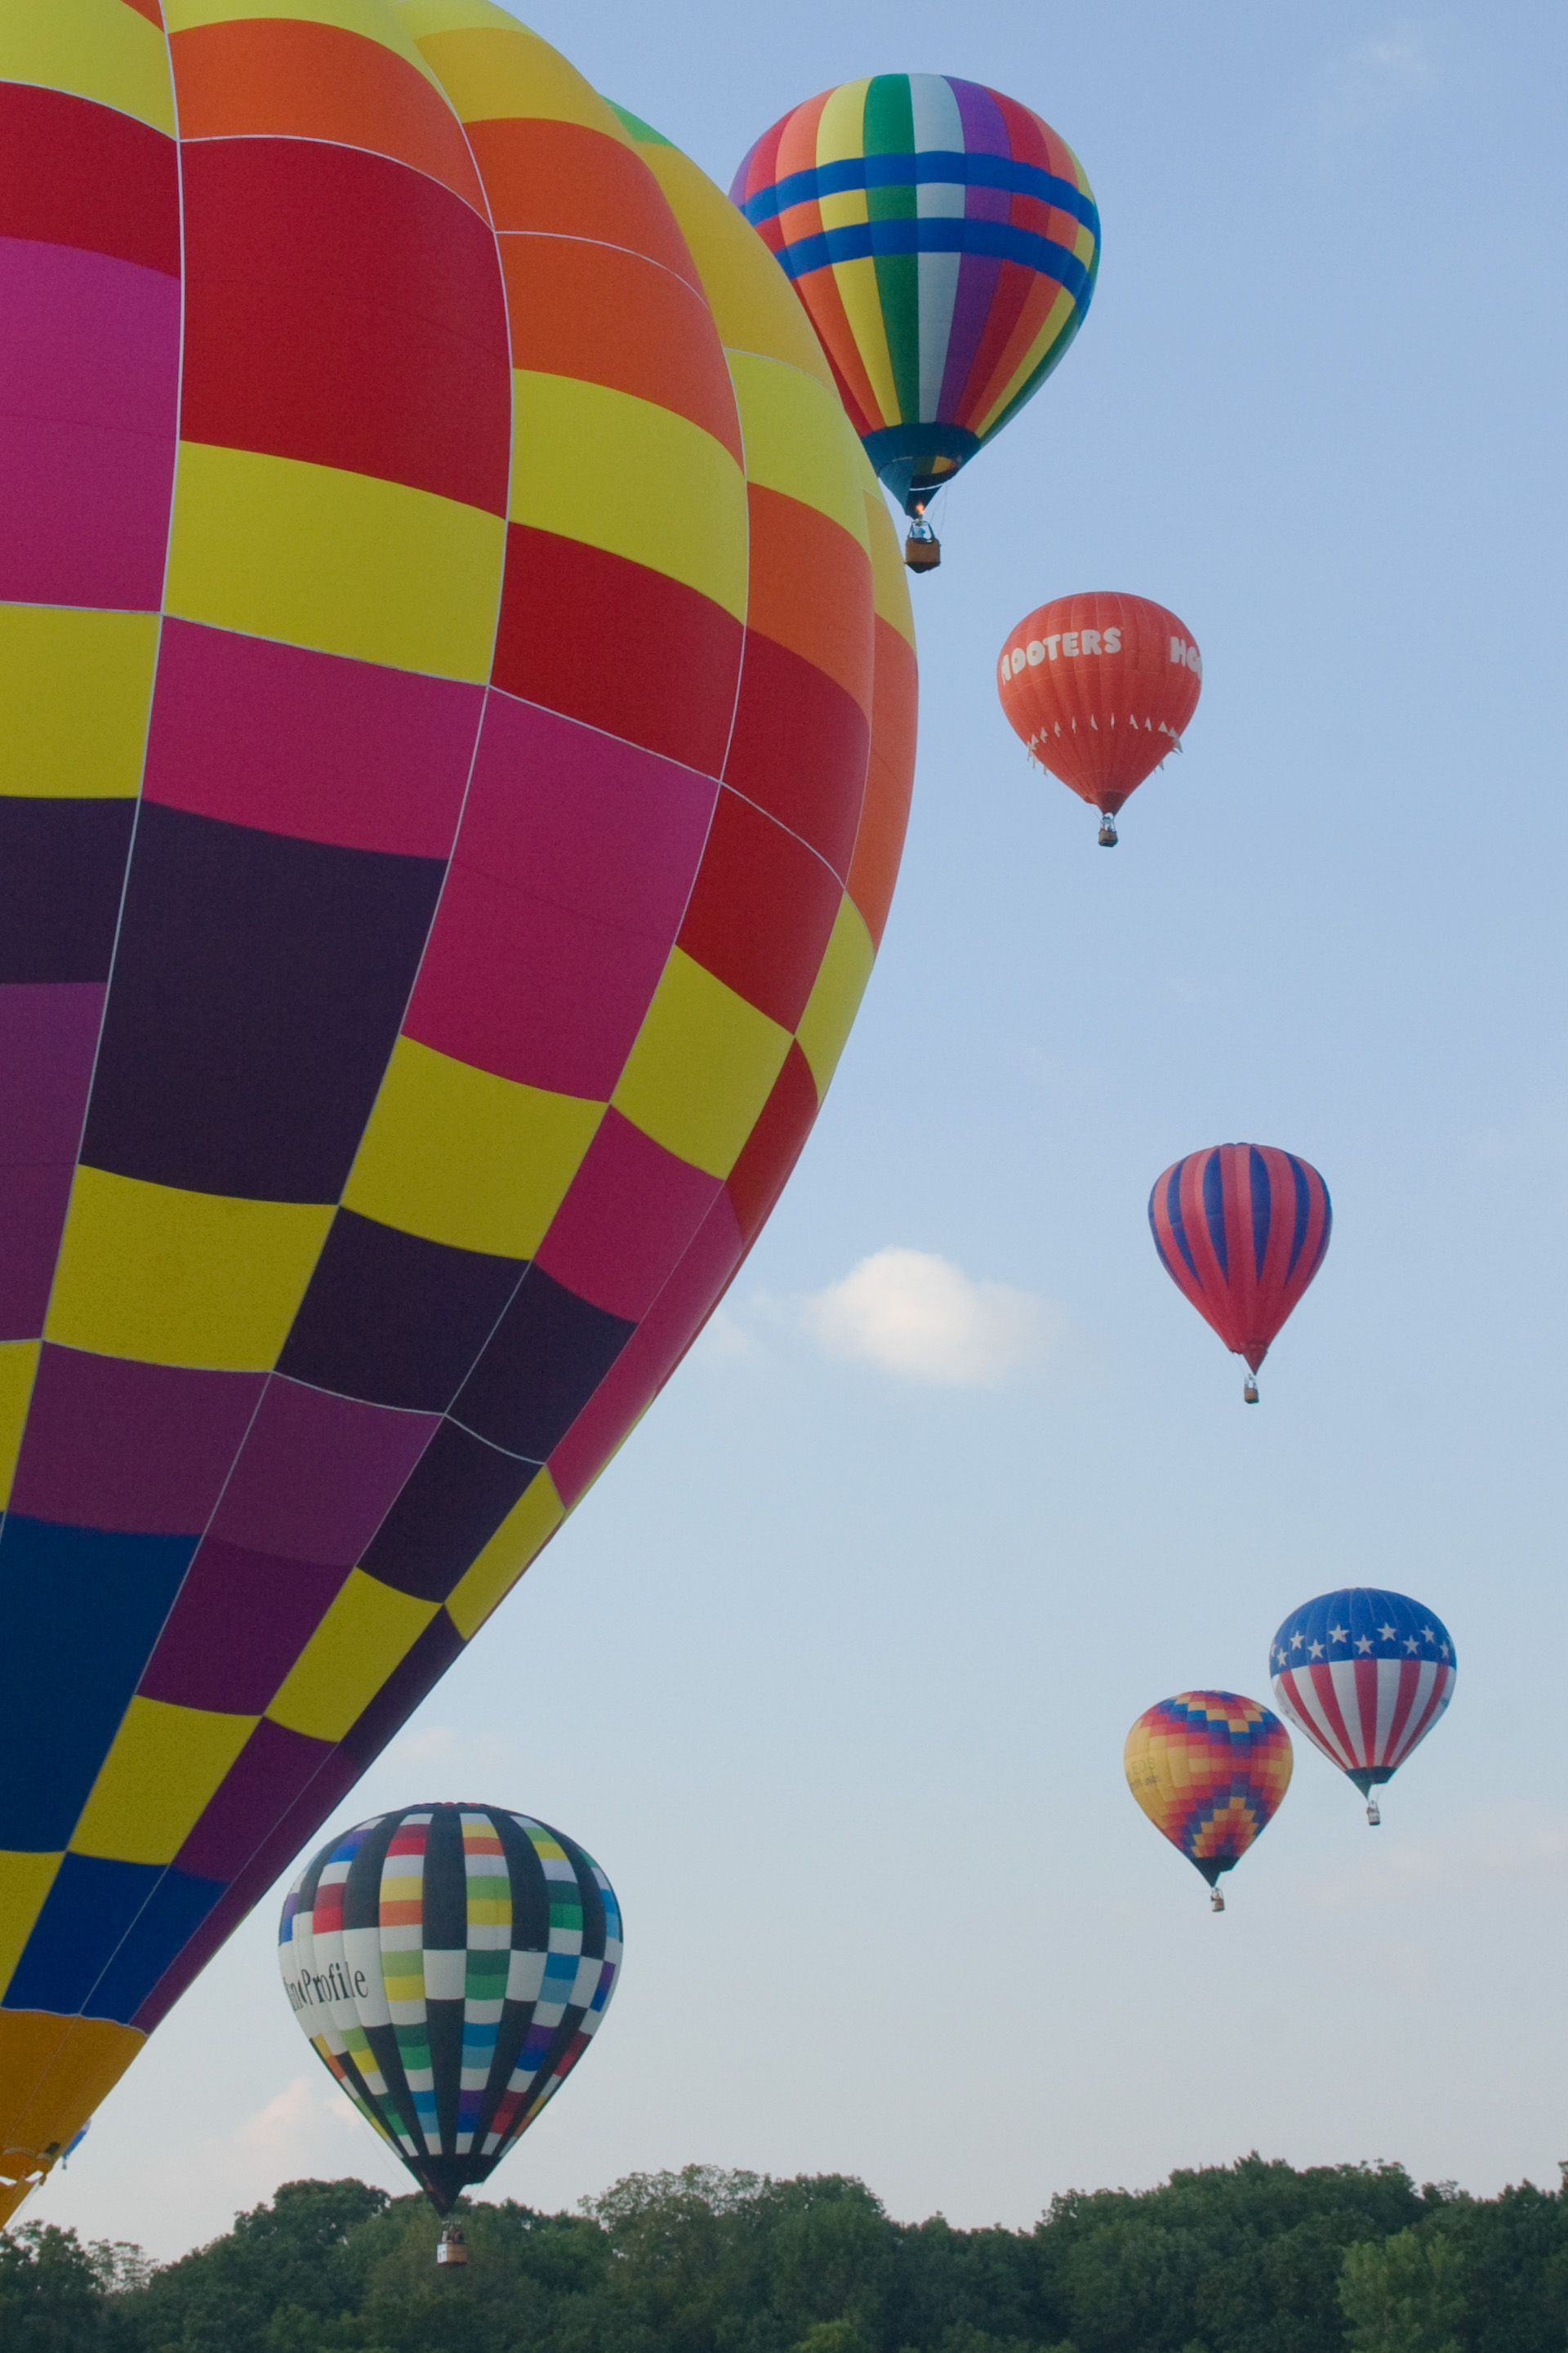 Pin by Julie Amdor on Hot Air Balloons Balloon festivals